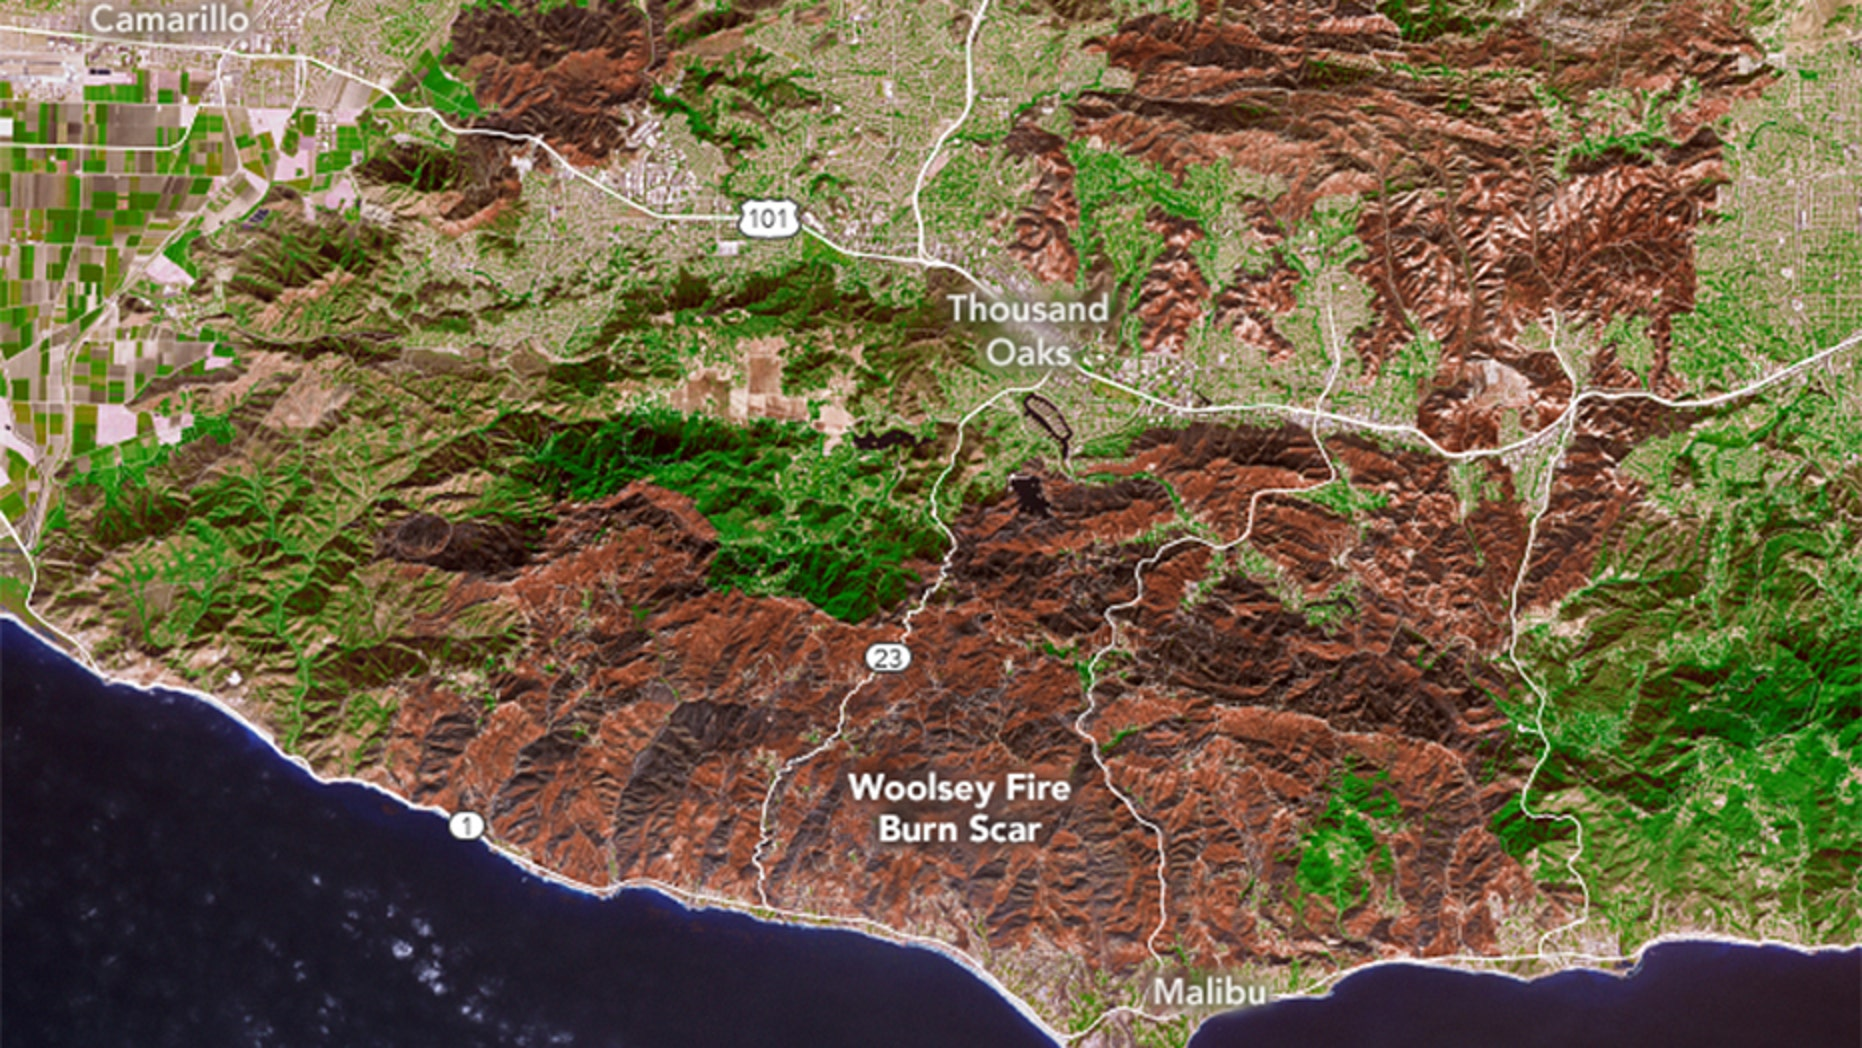 NASA has released this image showing the extent of the devastation left by the Woolsey Fire in Southern California.